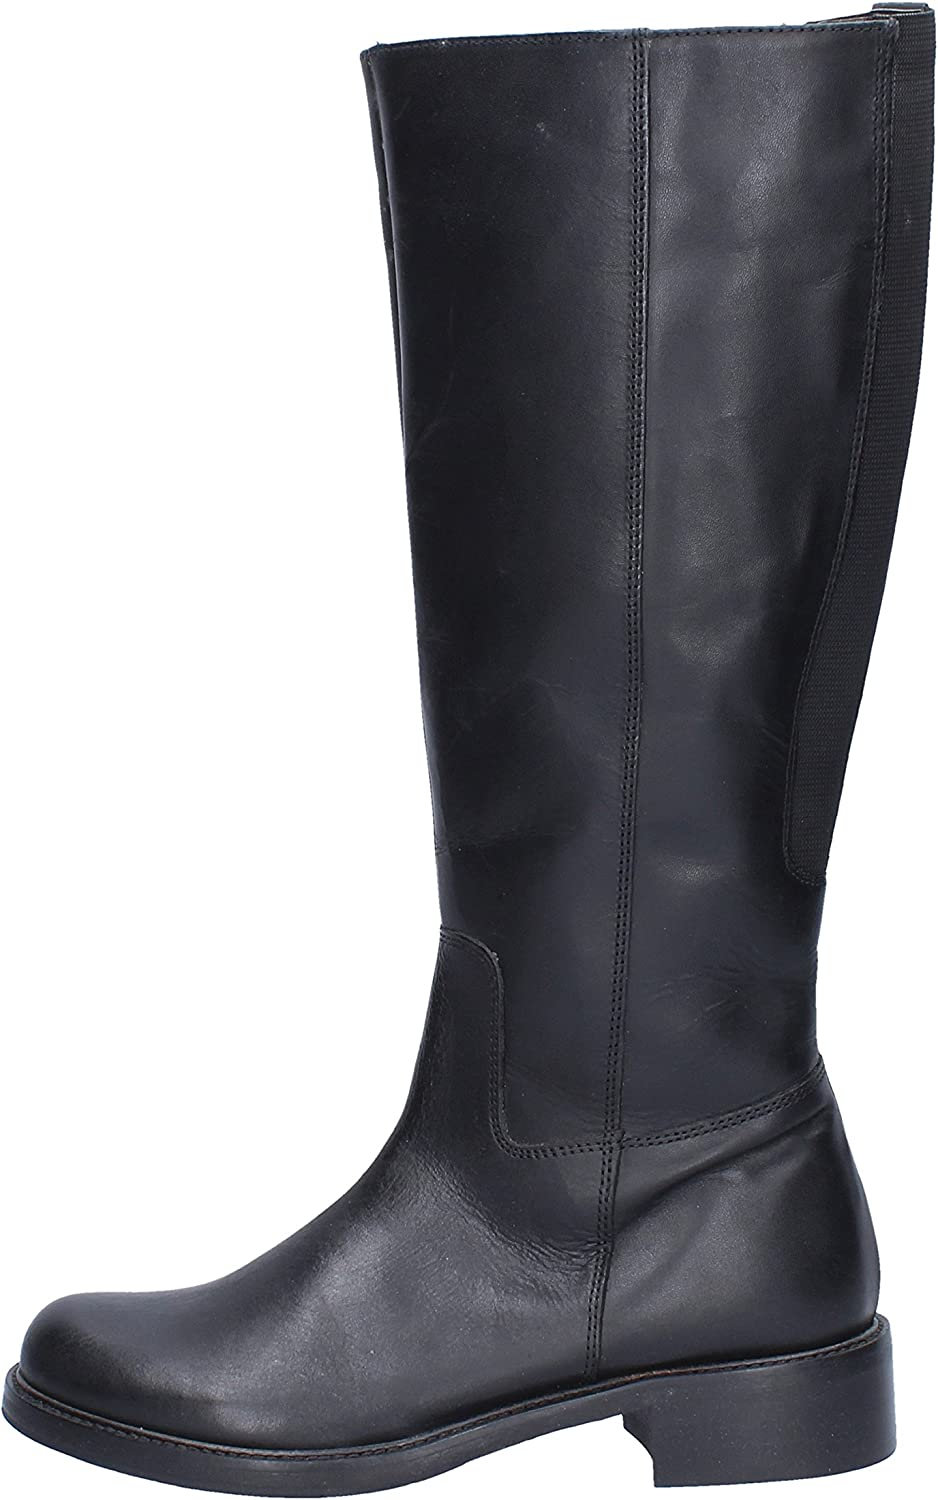 KEYS Boots Womens Leather Black